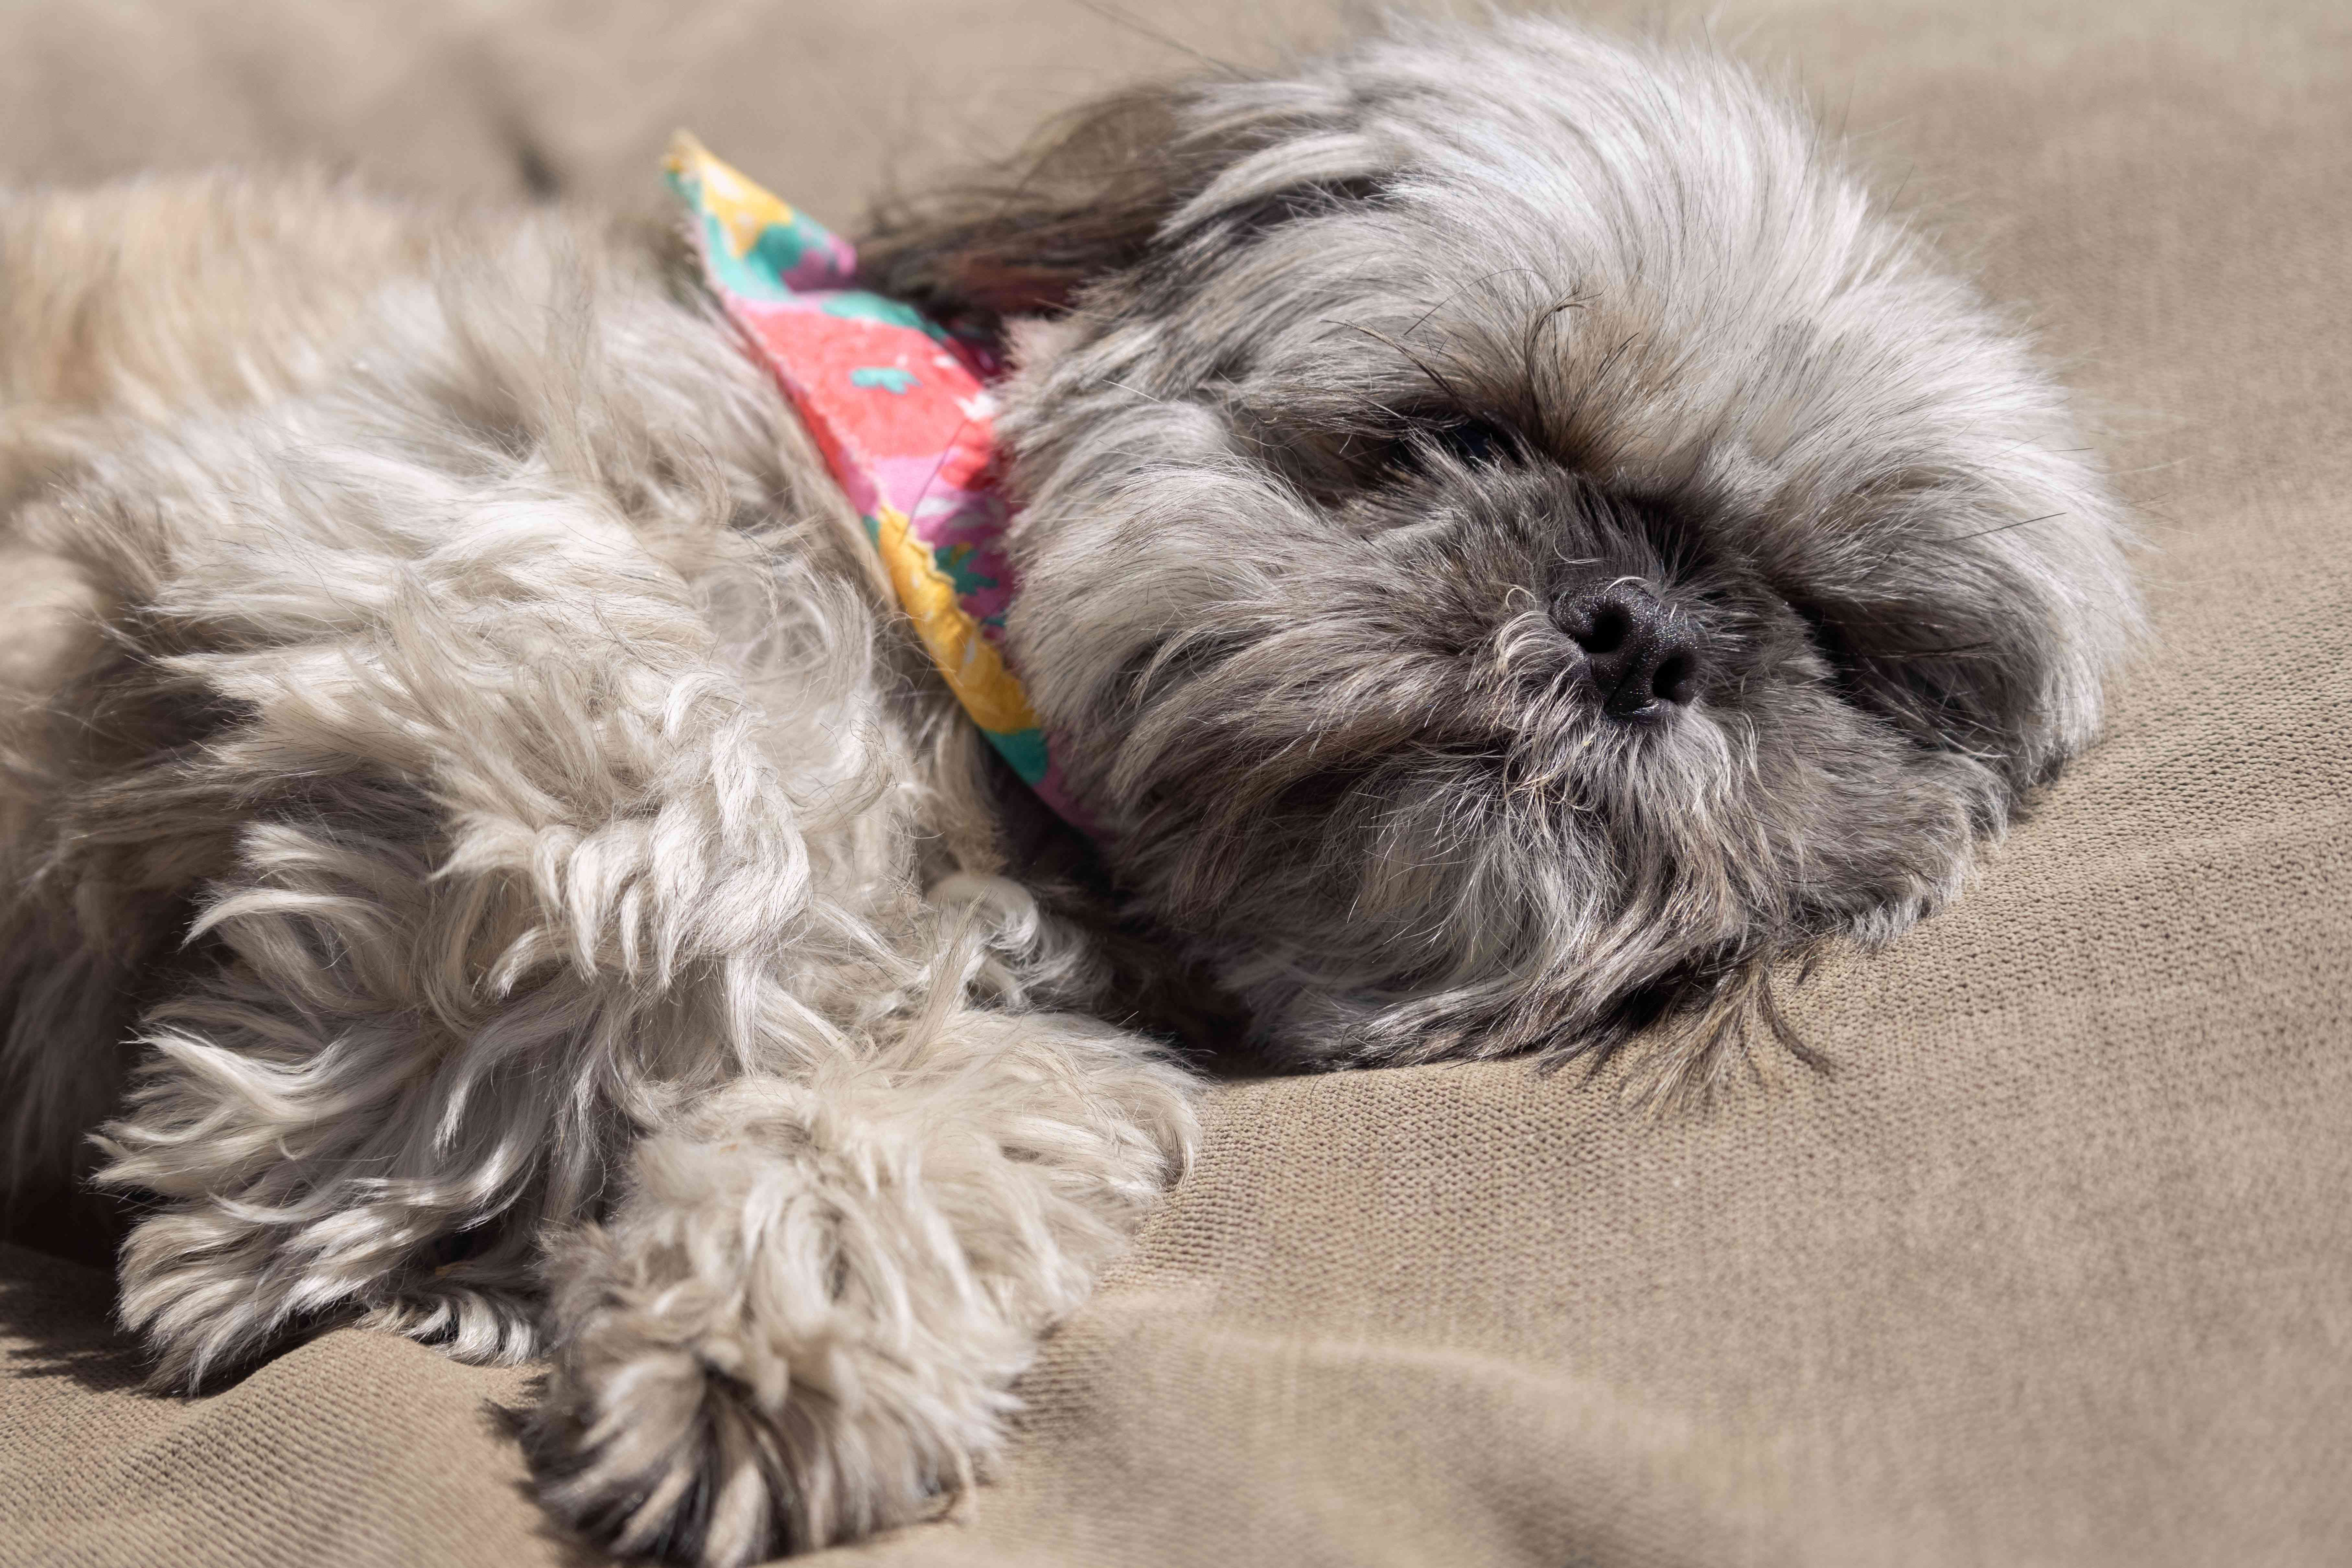 small fluffy gray dog with bandana is fast asleep on tan dog bed